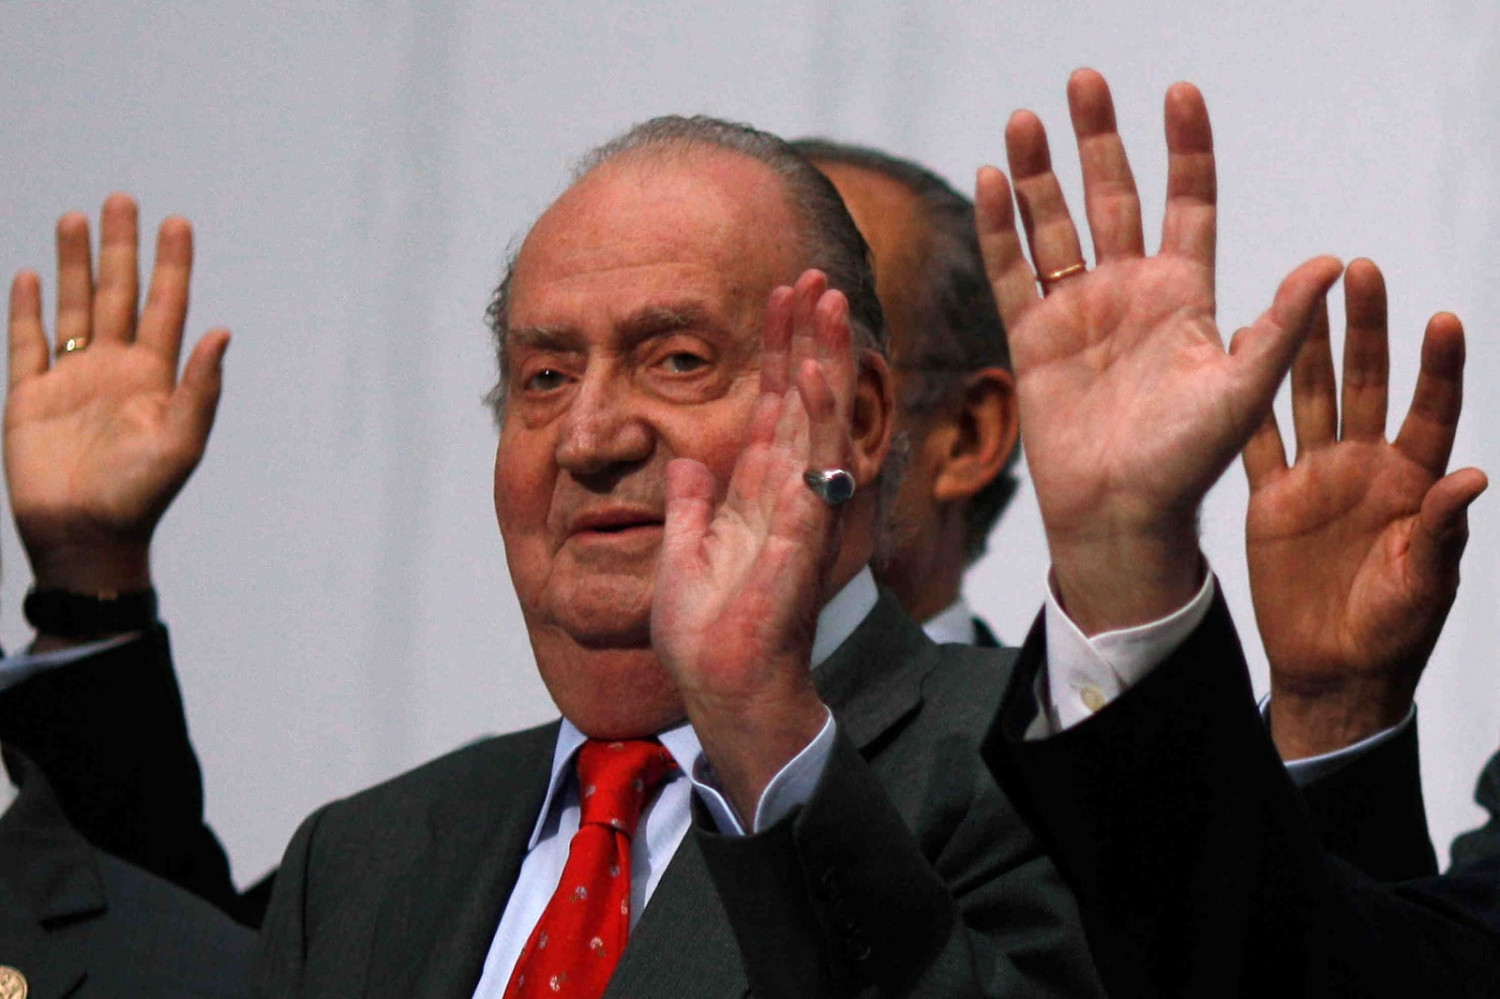 Spanish King Juan Carlos waves during a group photo with Ibero-American leaders during the Ibero-American Summit in Cadiz (by REUTERS/Jon Nazca)